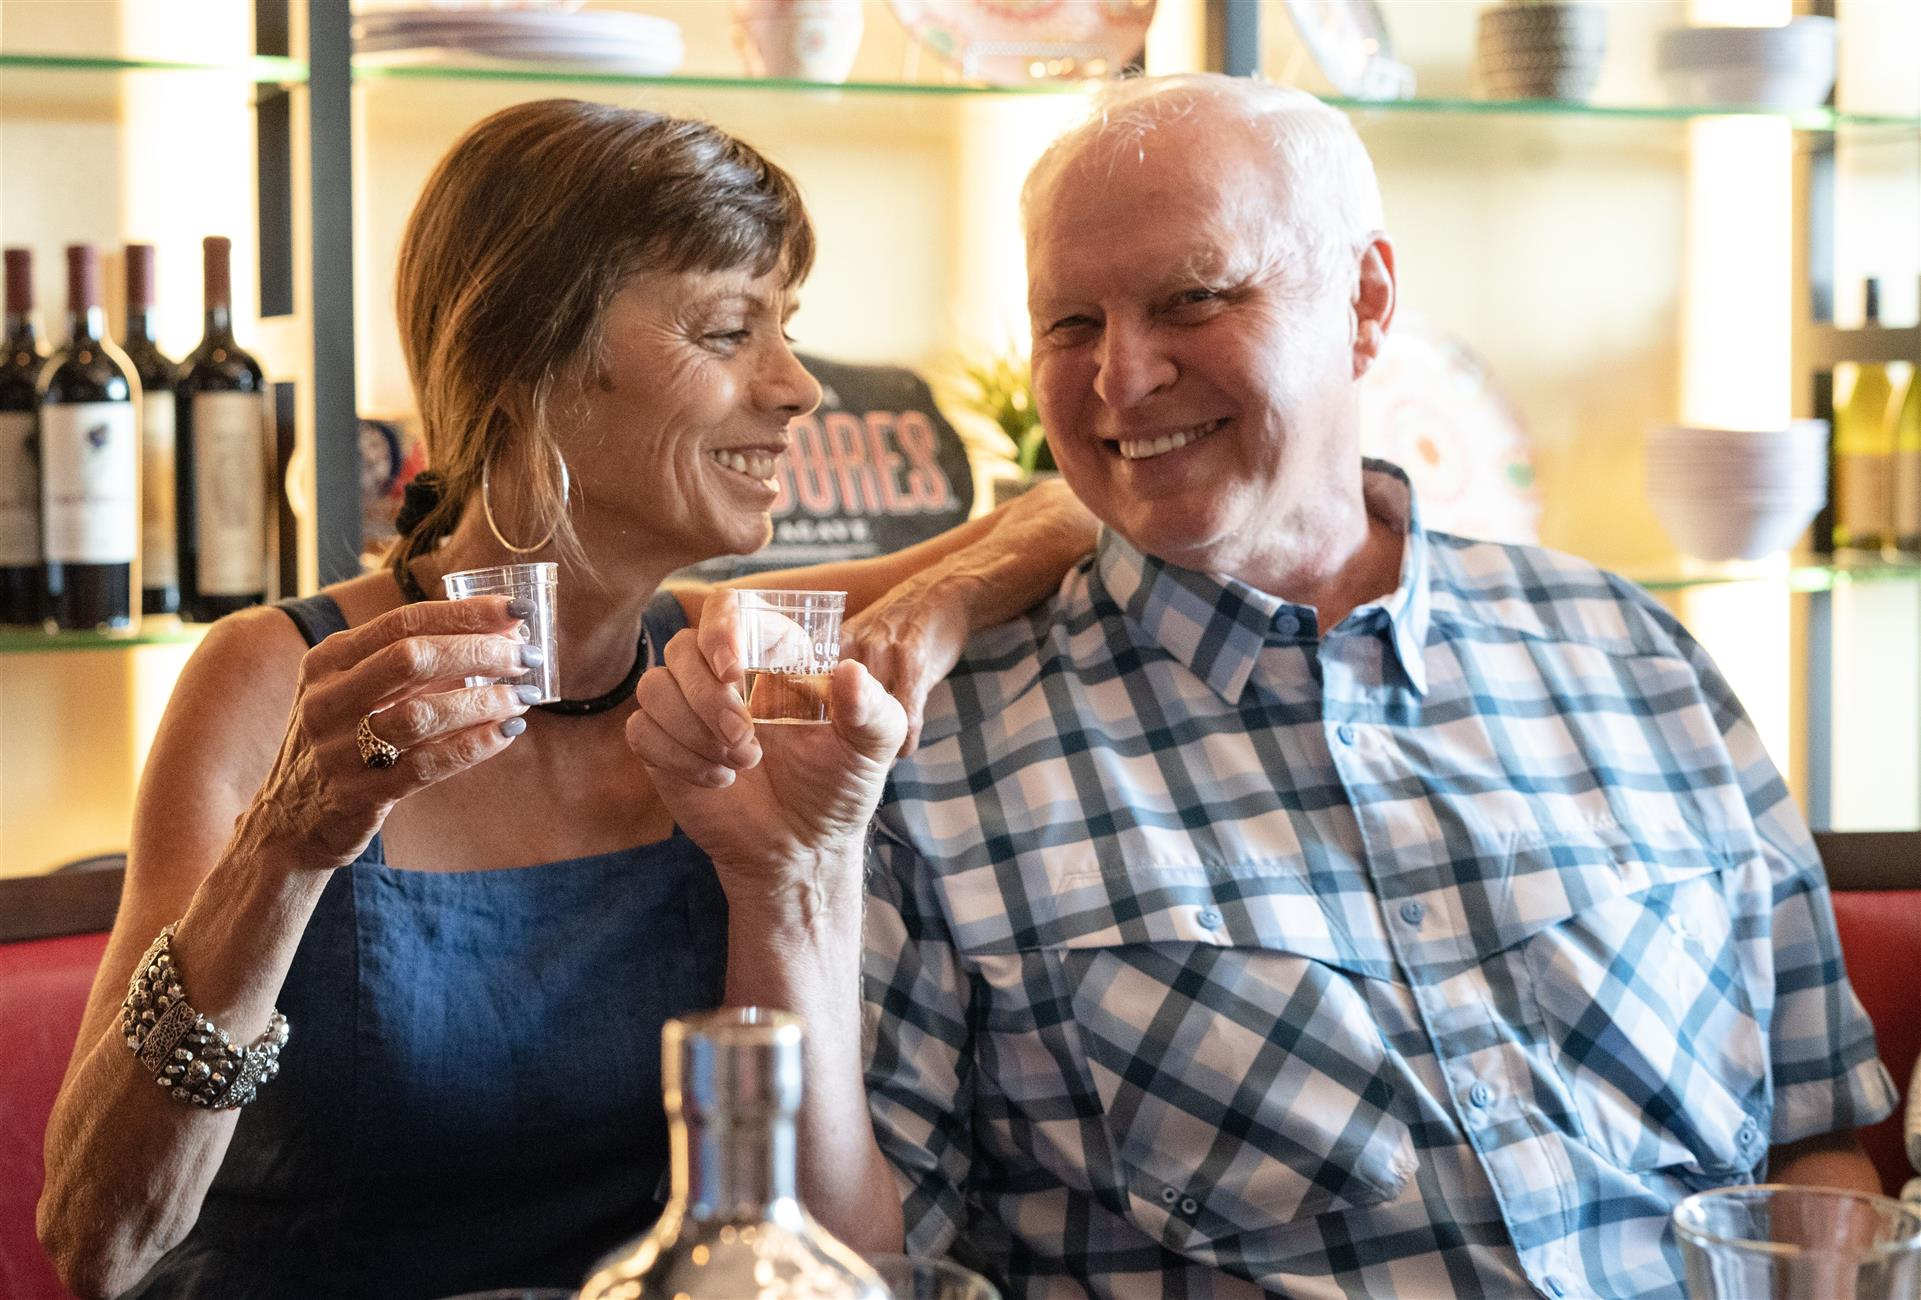 An older couple smiling while posing with their shots